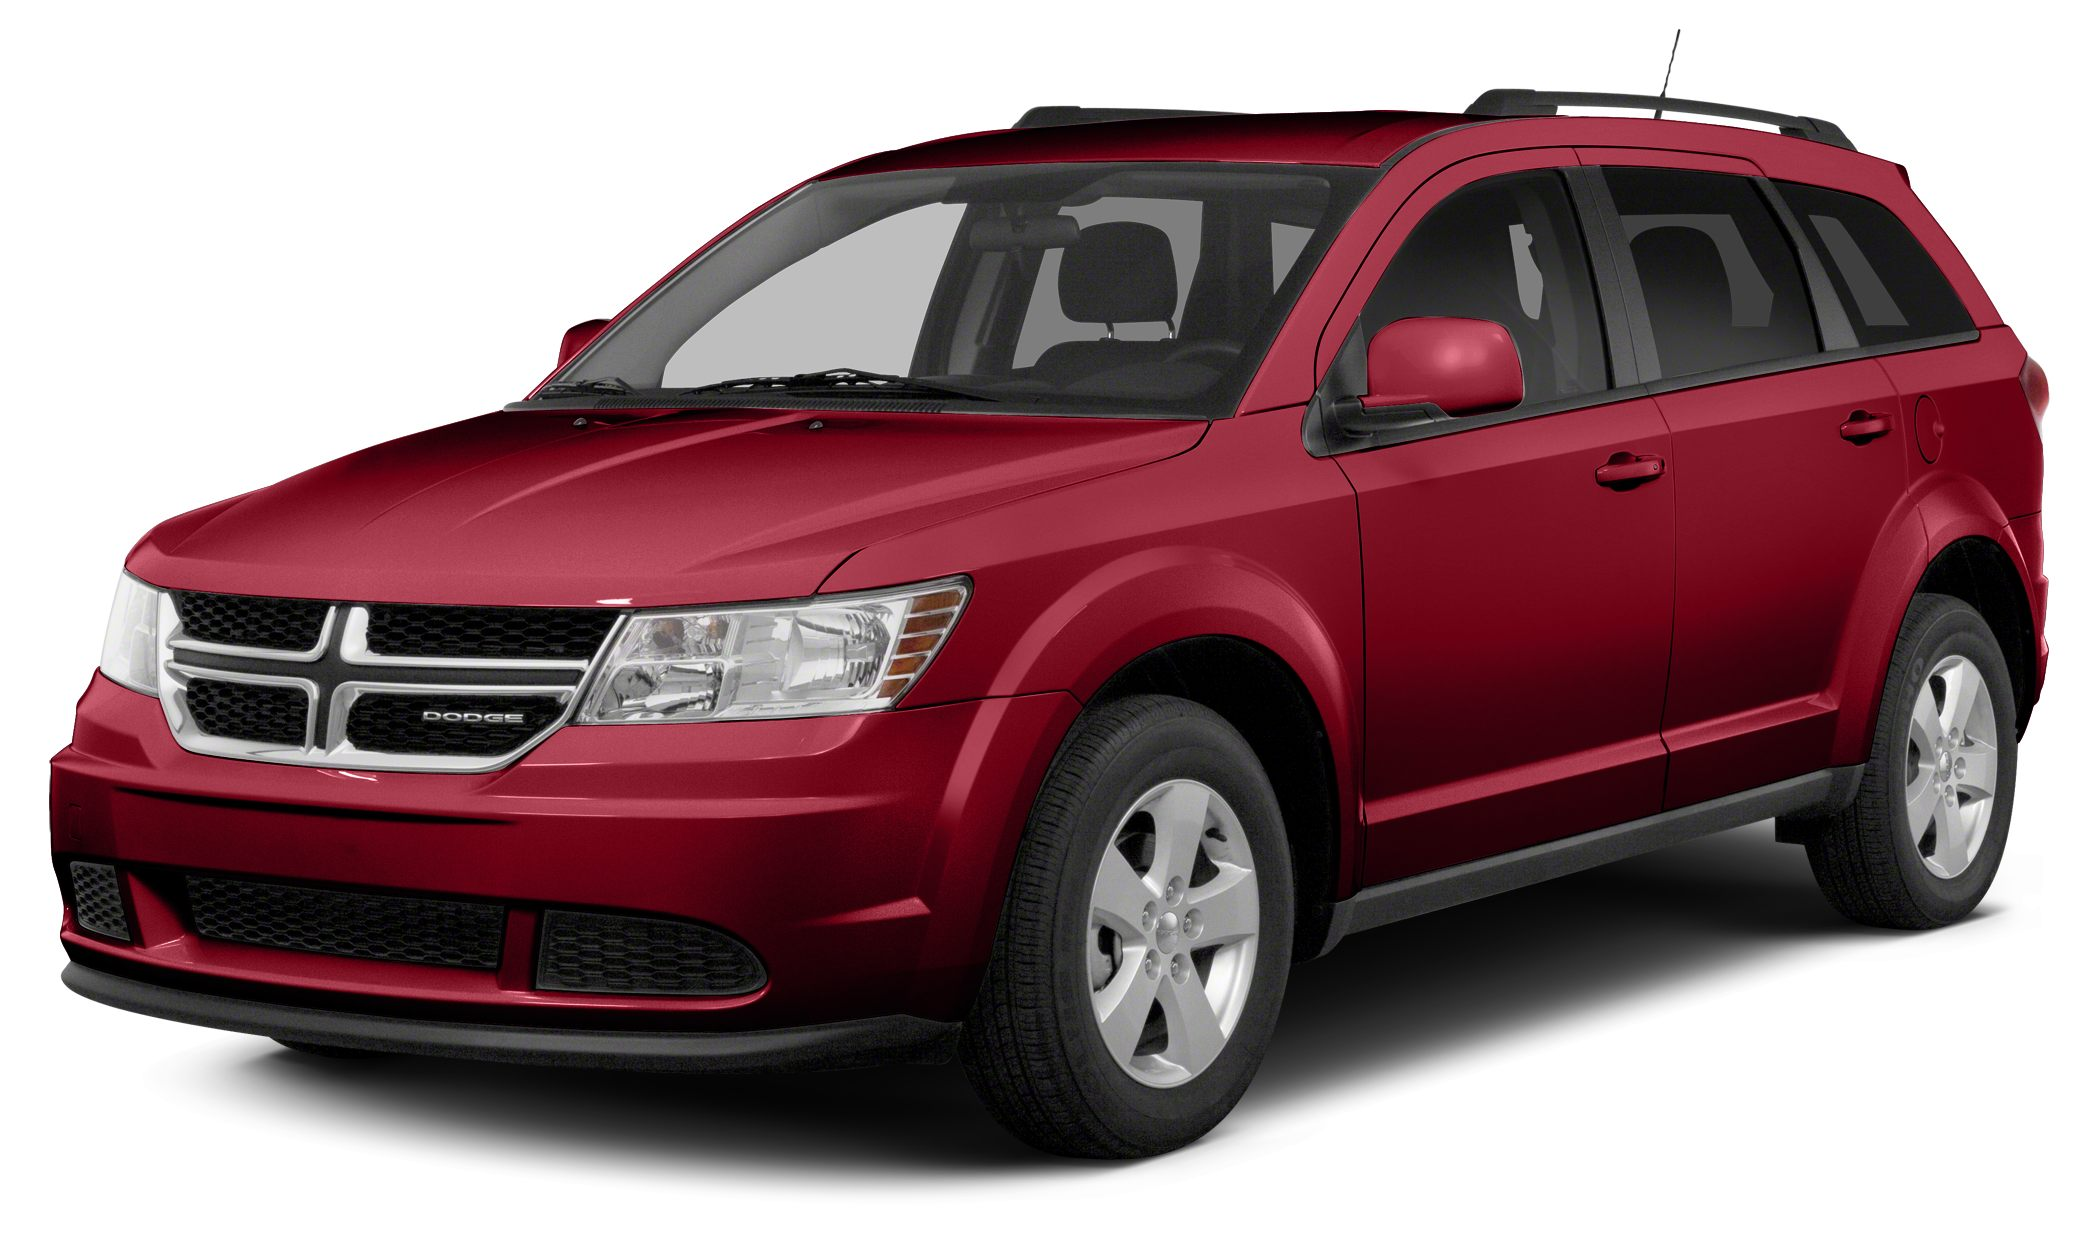 2014 Dodge Journey SXT Proudly serving manatee county for over 60 years offering Cars Trucks SUV